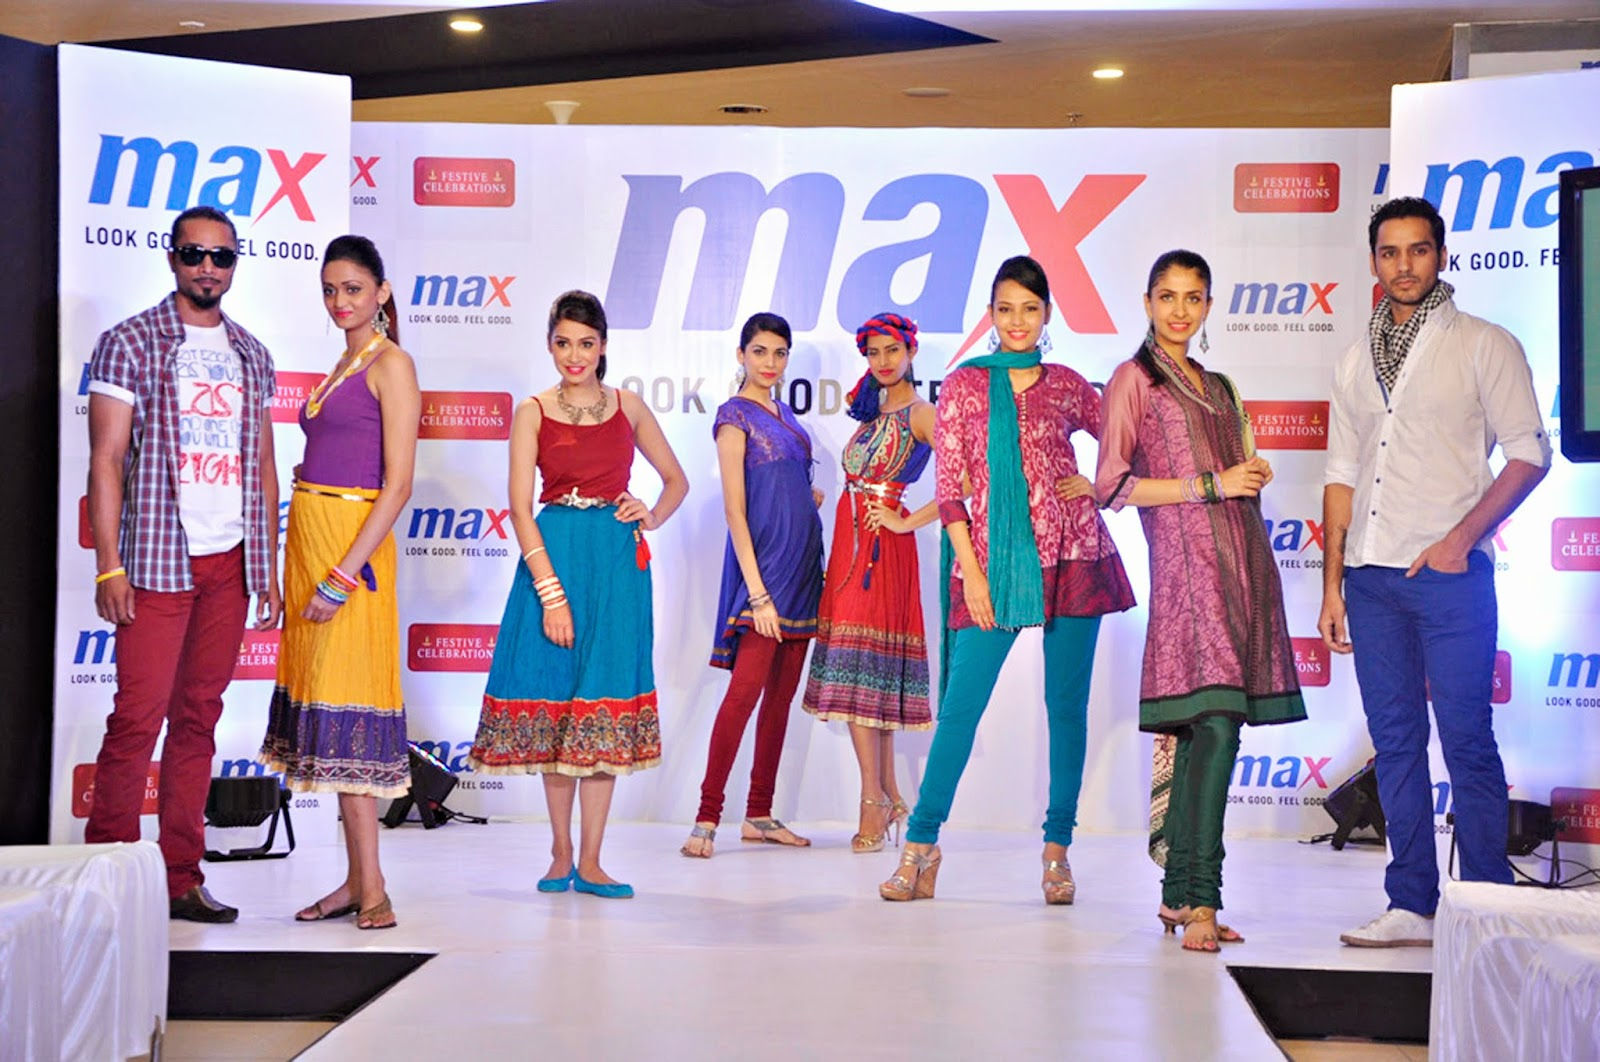 Max fashion products join to Flipkart | Textech Communique